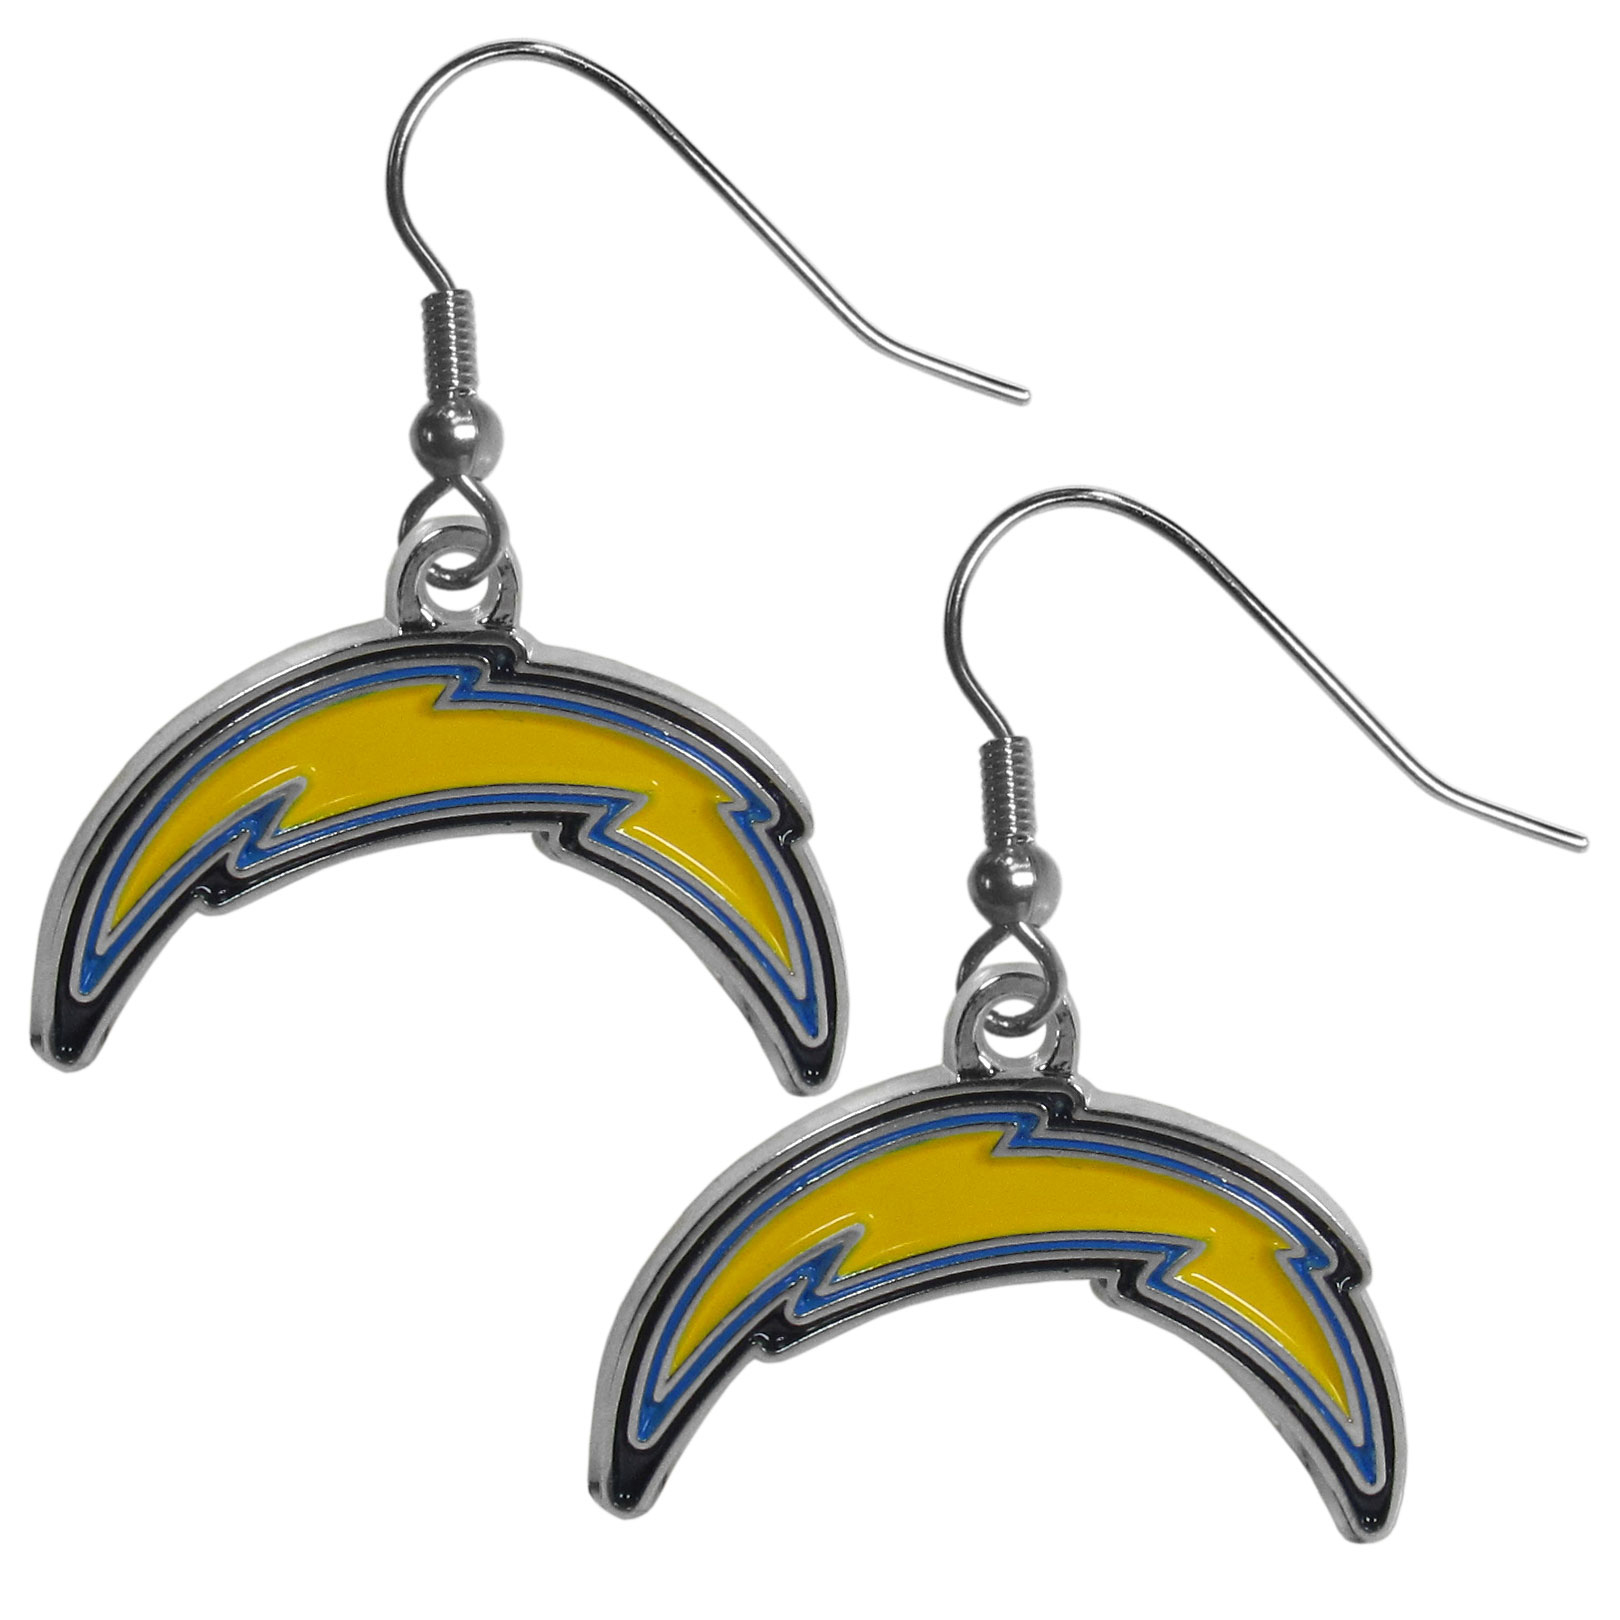 San Diego Chargers Chrome Dangle Earrings - Officially licensed NFL San Diego Chargers dangle earrings are fully cast with exceptional detail and a hand enameled finish. The San Diego Chargers earrings have a high polish nickel free chrome finish and hypoallergenic fishhook posts. Officially licensed NFL product Licensee: Siskiyou Buckle Thank you for visiting CrazedOutSports.com